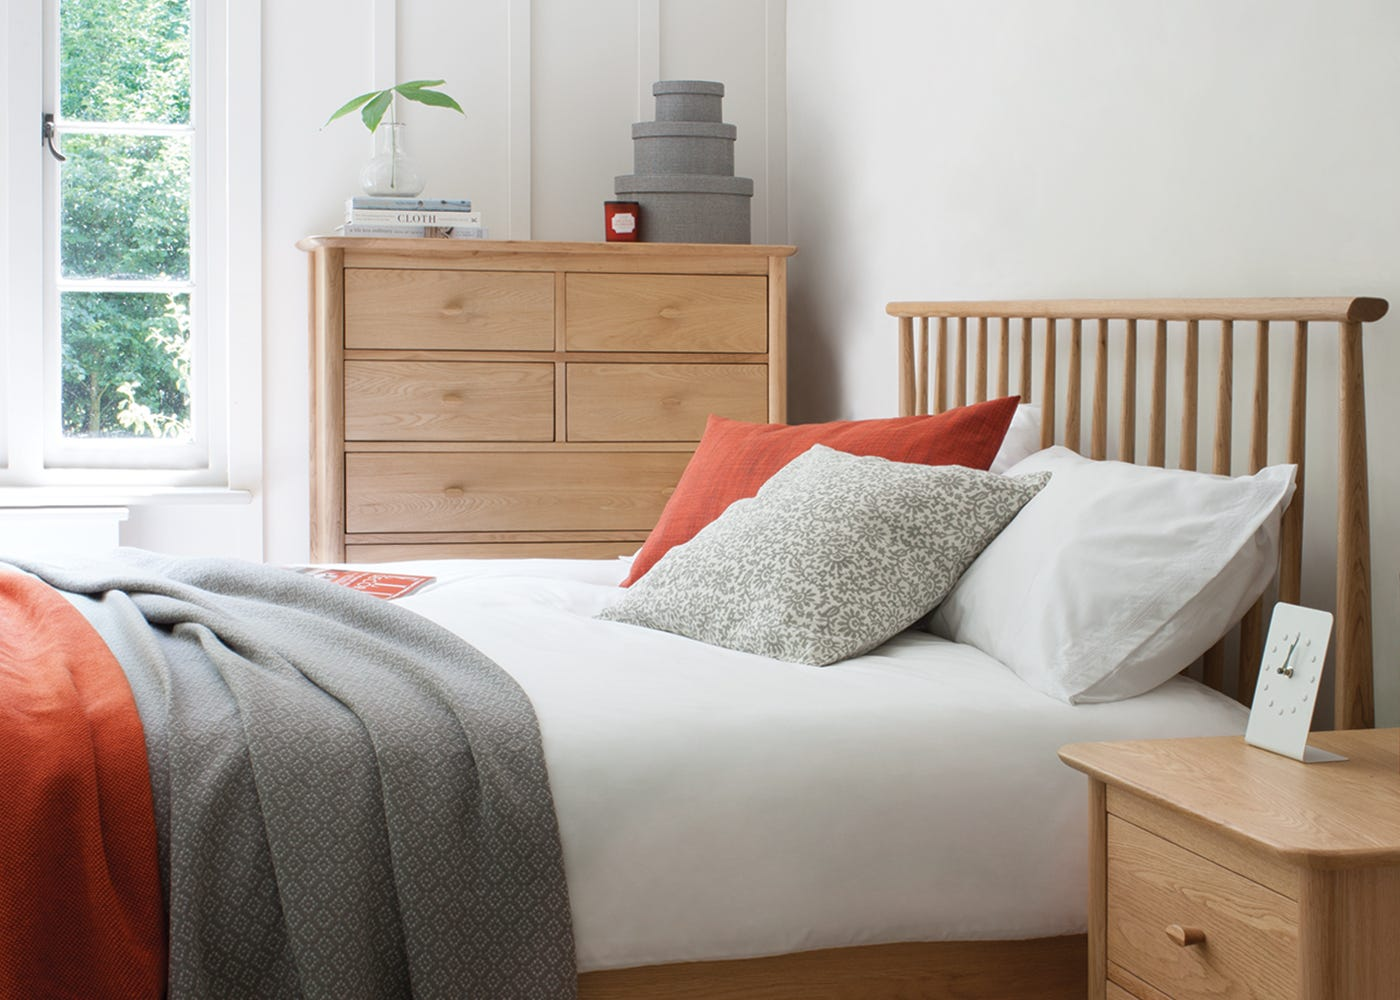 Teramo 7 Drawer Chest, Bed & Bedside Cabinet